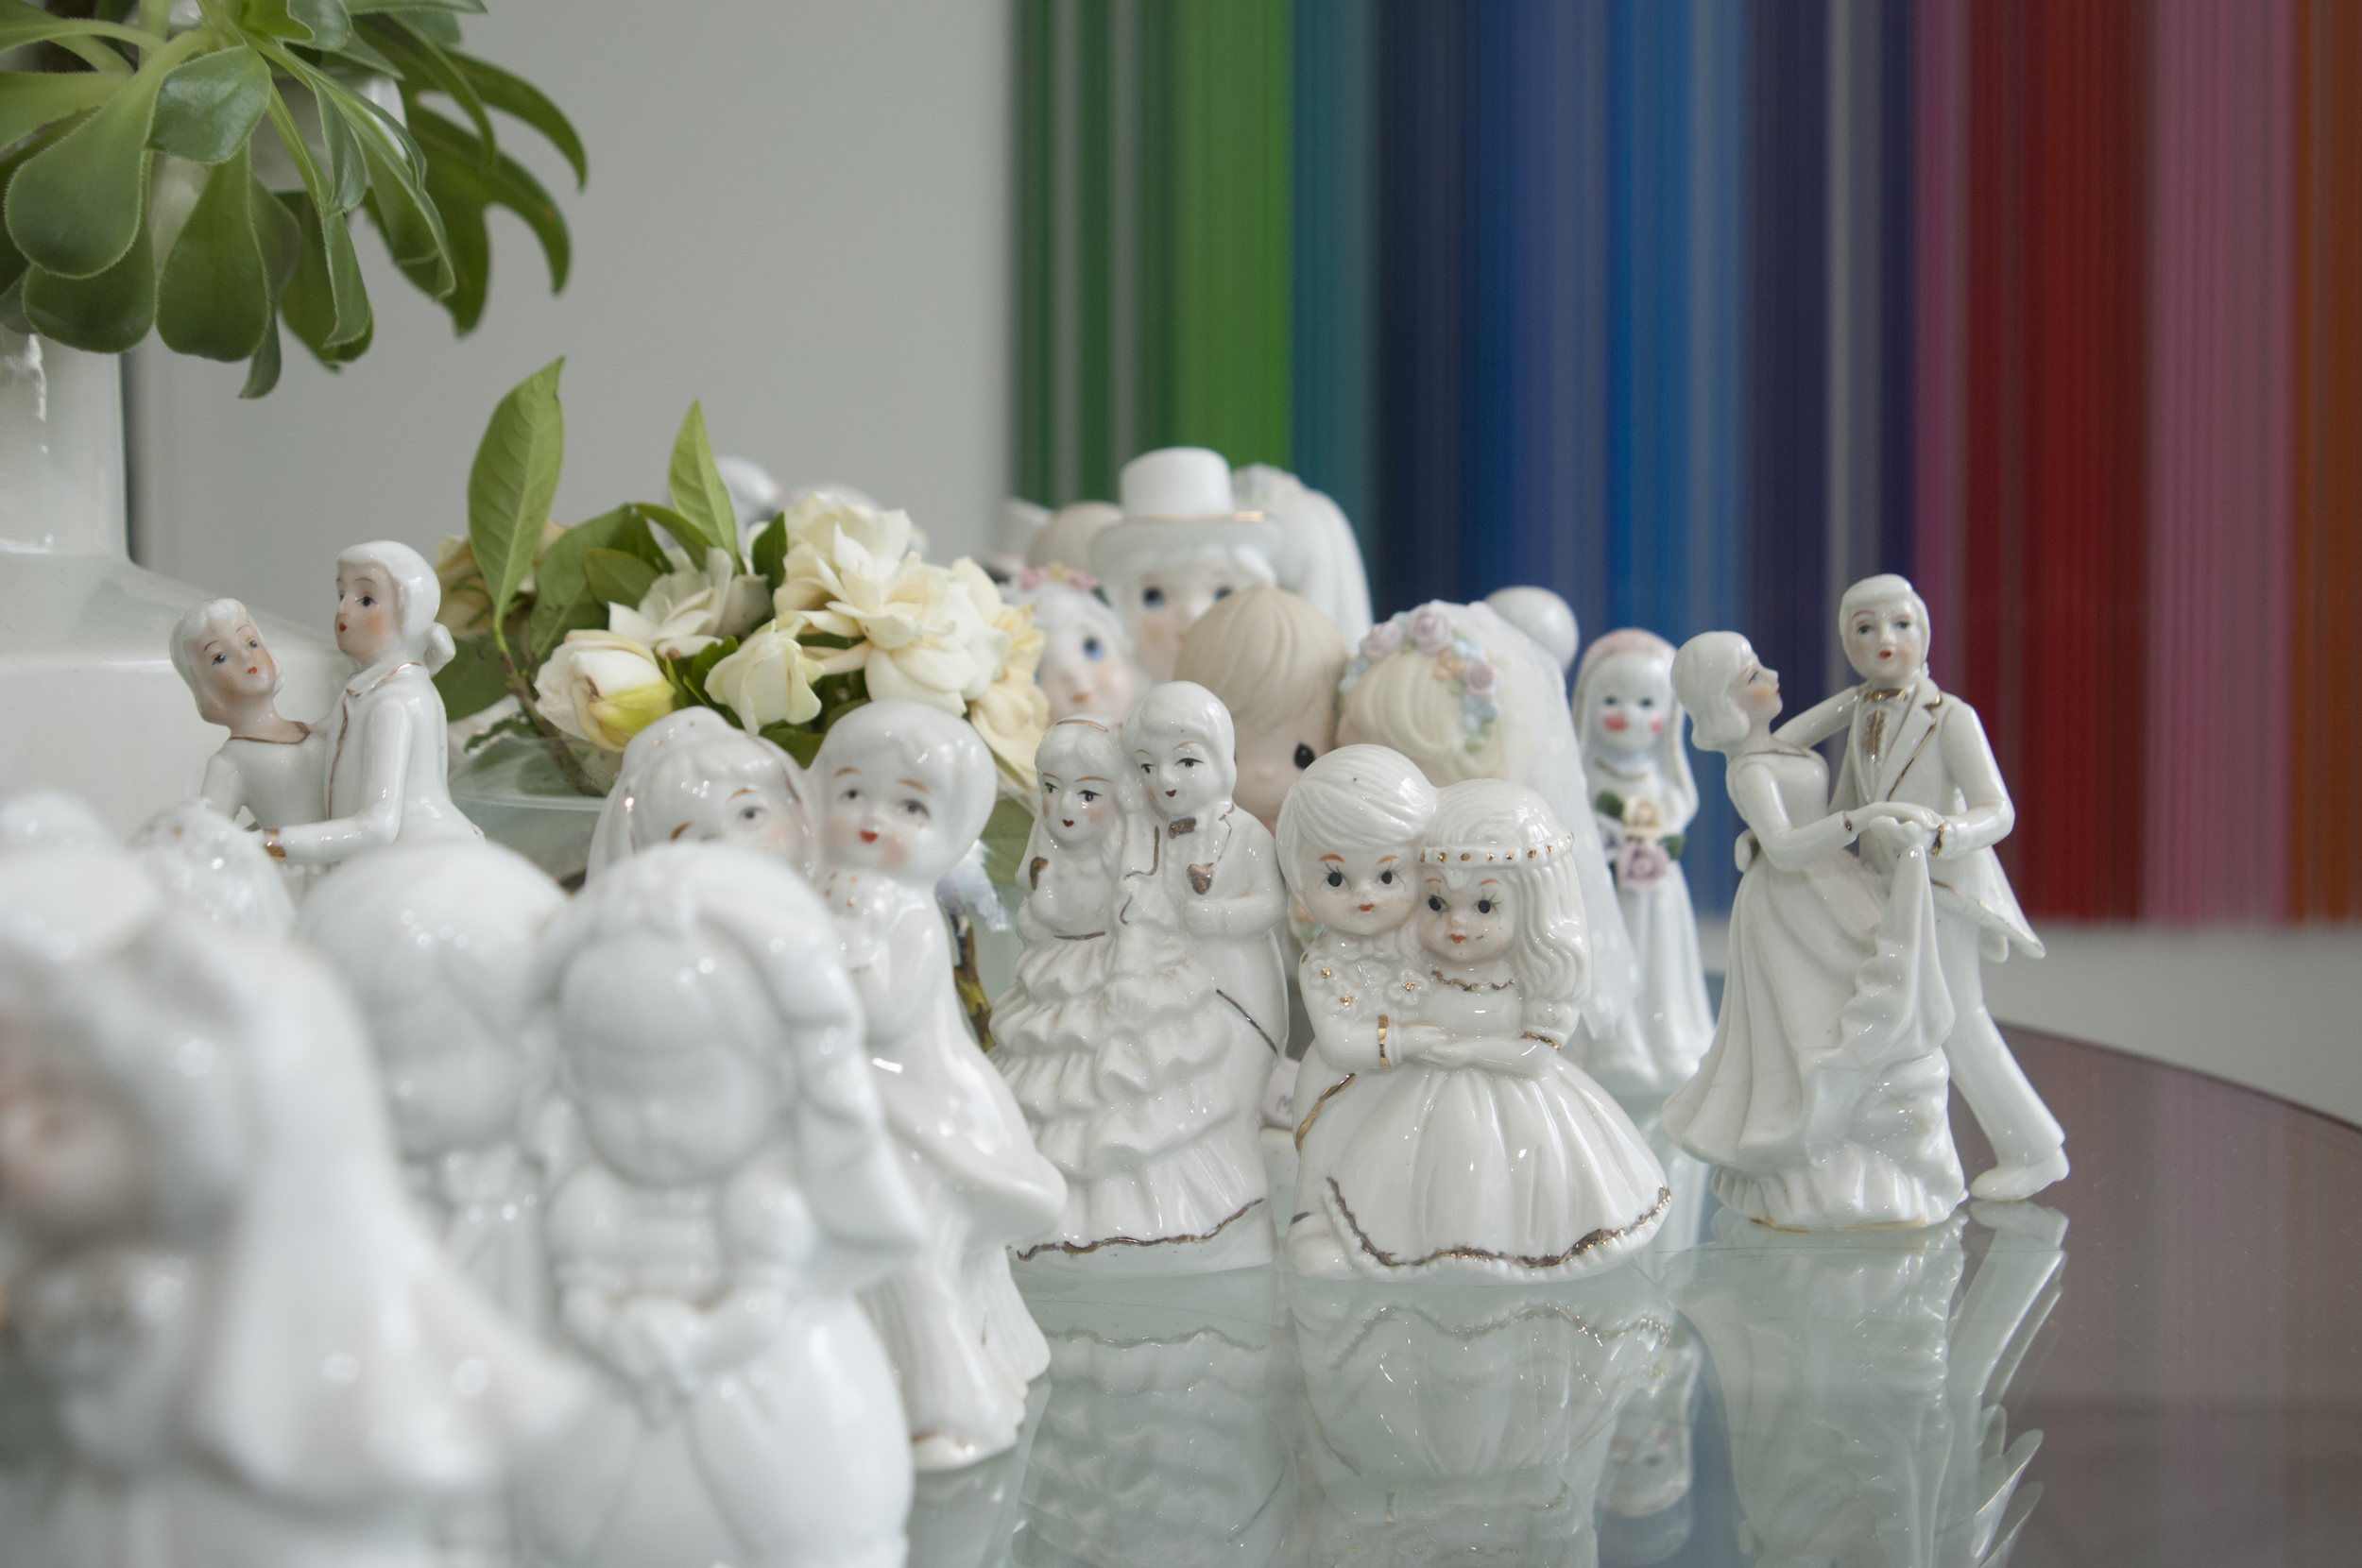 Suzie Stanford's collection of cake toppers